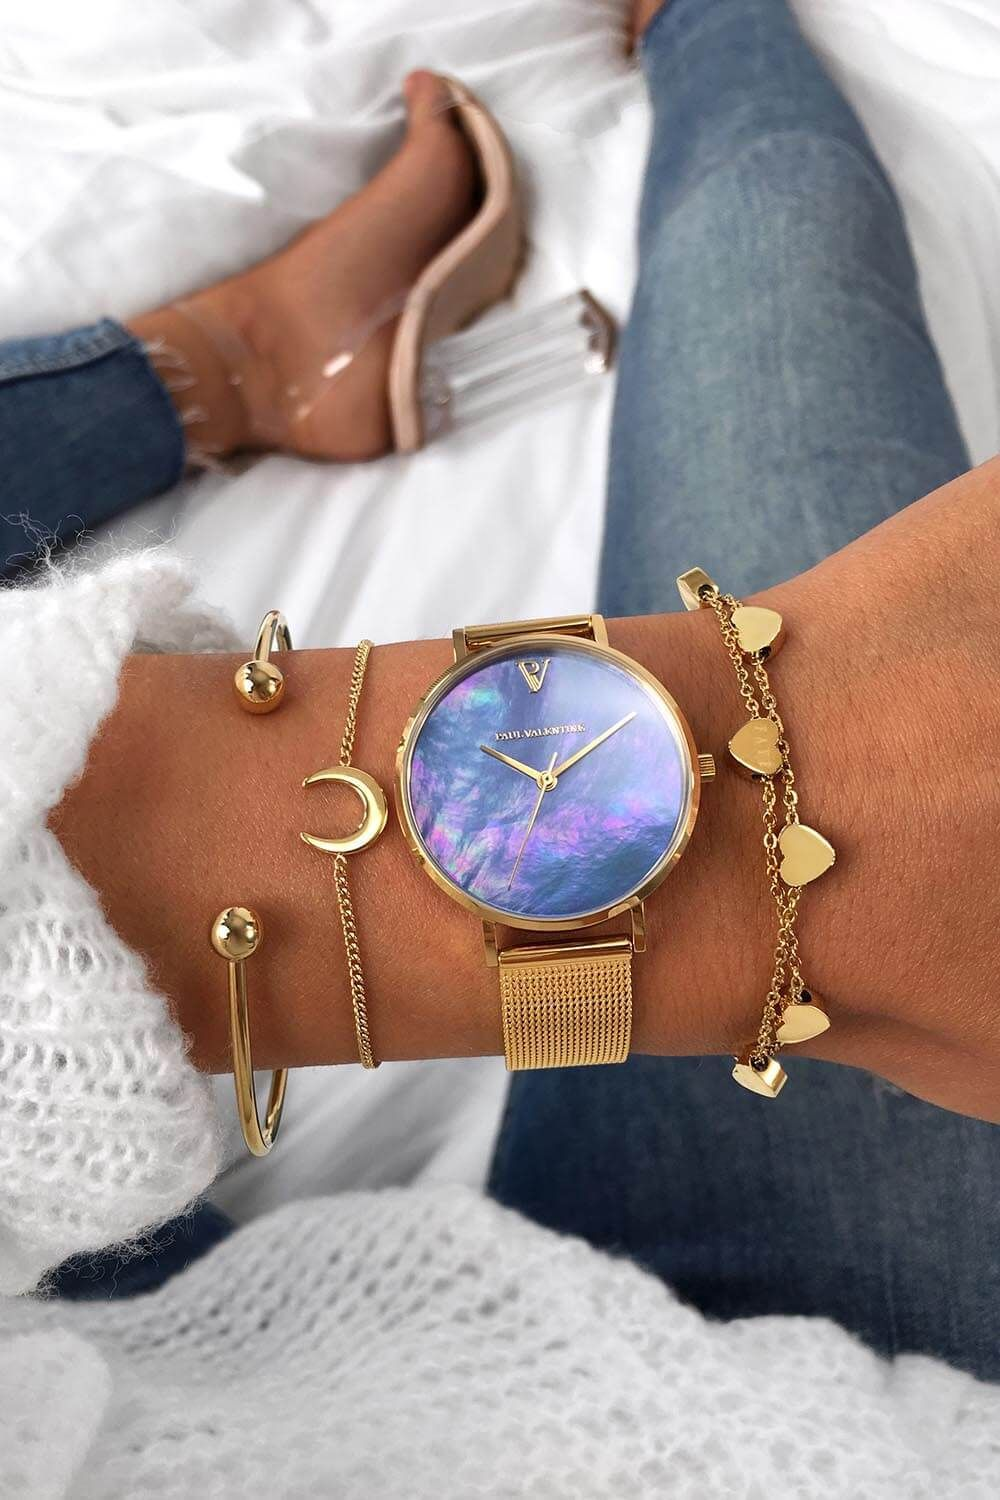 52c3a4d348777a Description The 32mm collection are the smallest Paul Valentine watches yet  - The smaller size makes it perfect for tiny wrists. The Blue Seashell Gold  Mesh ...